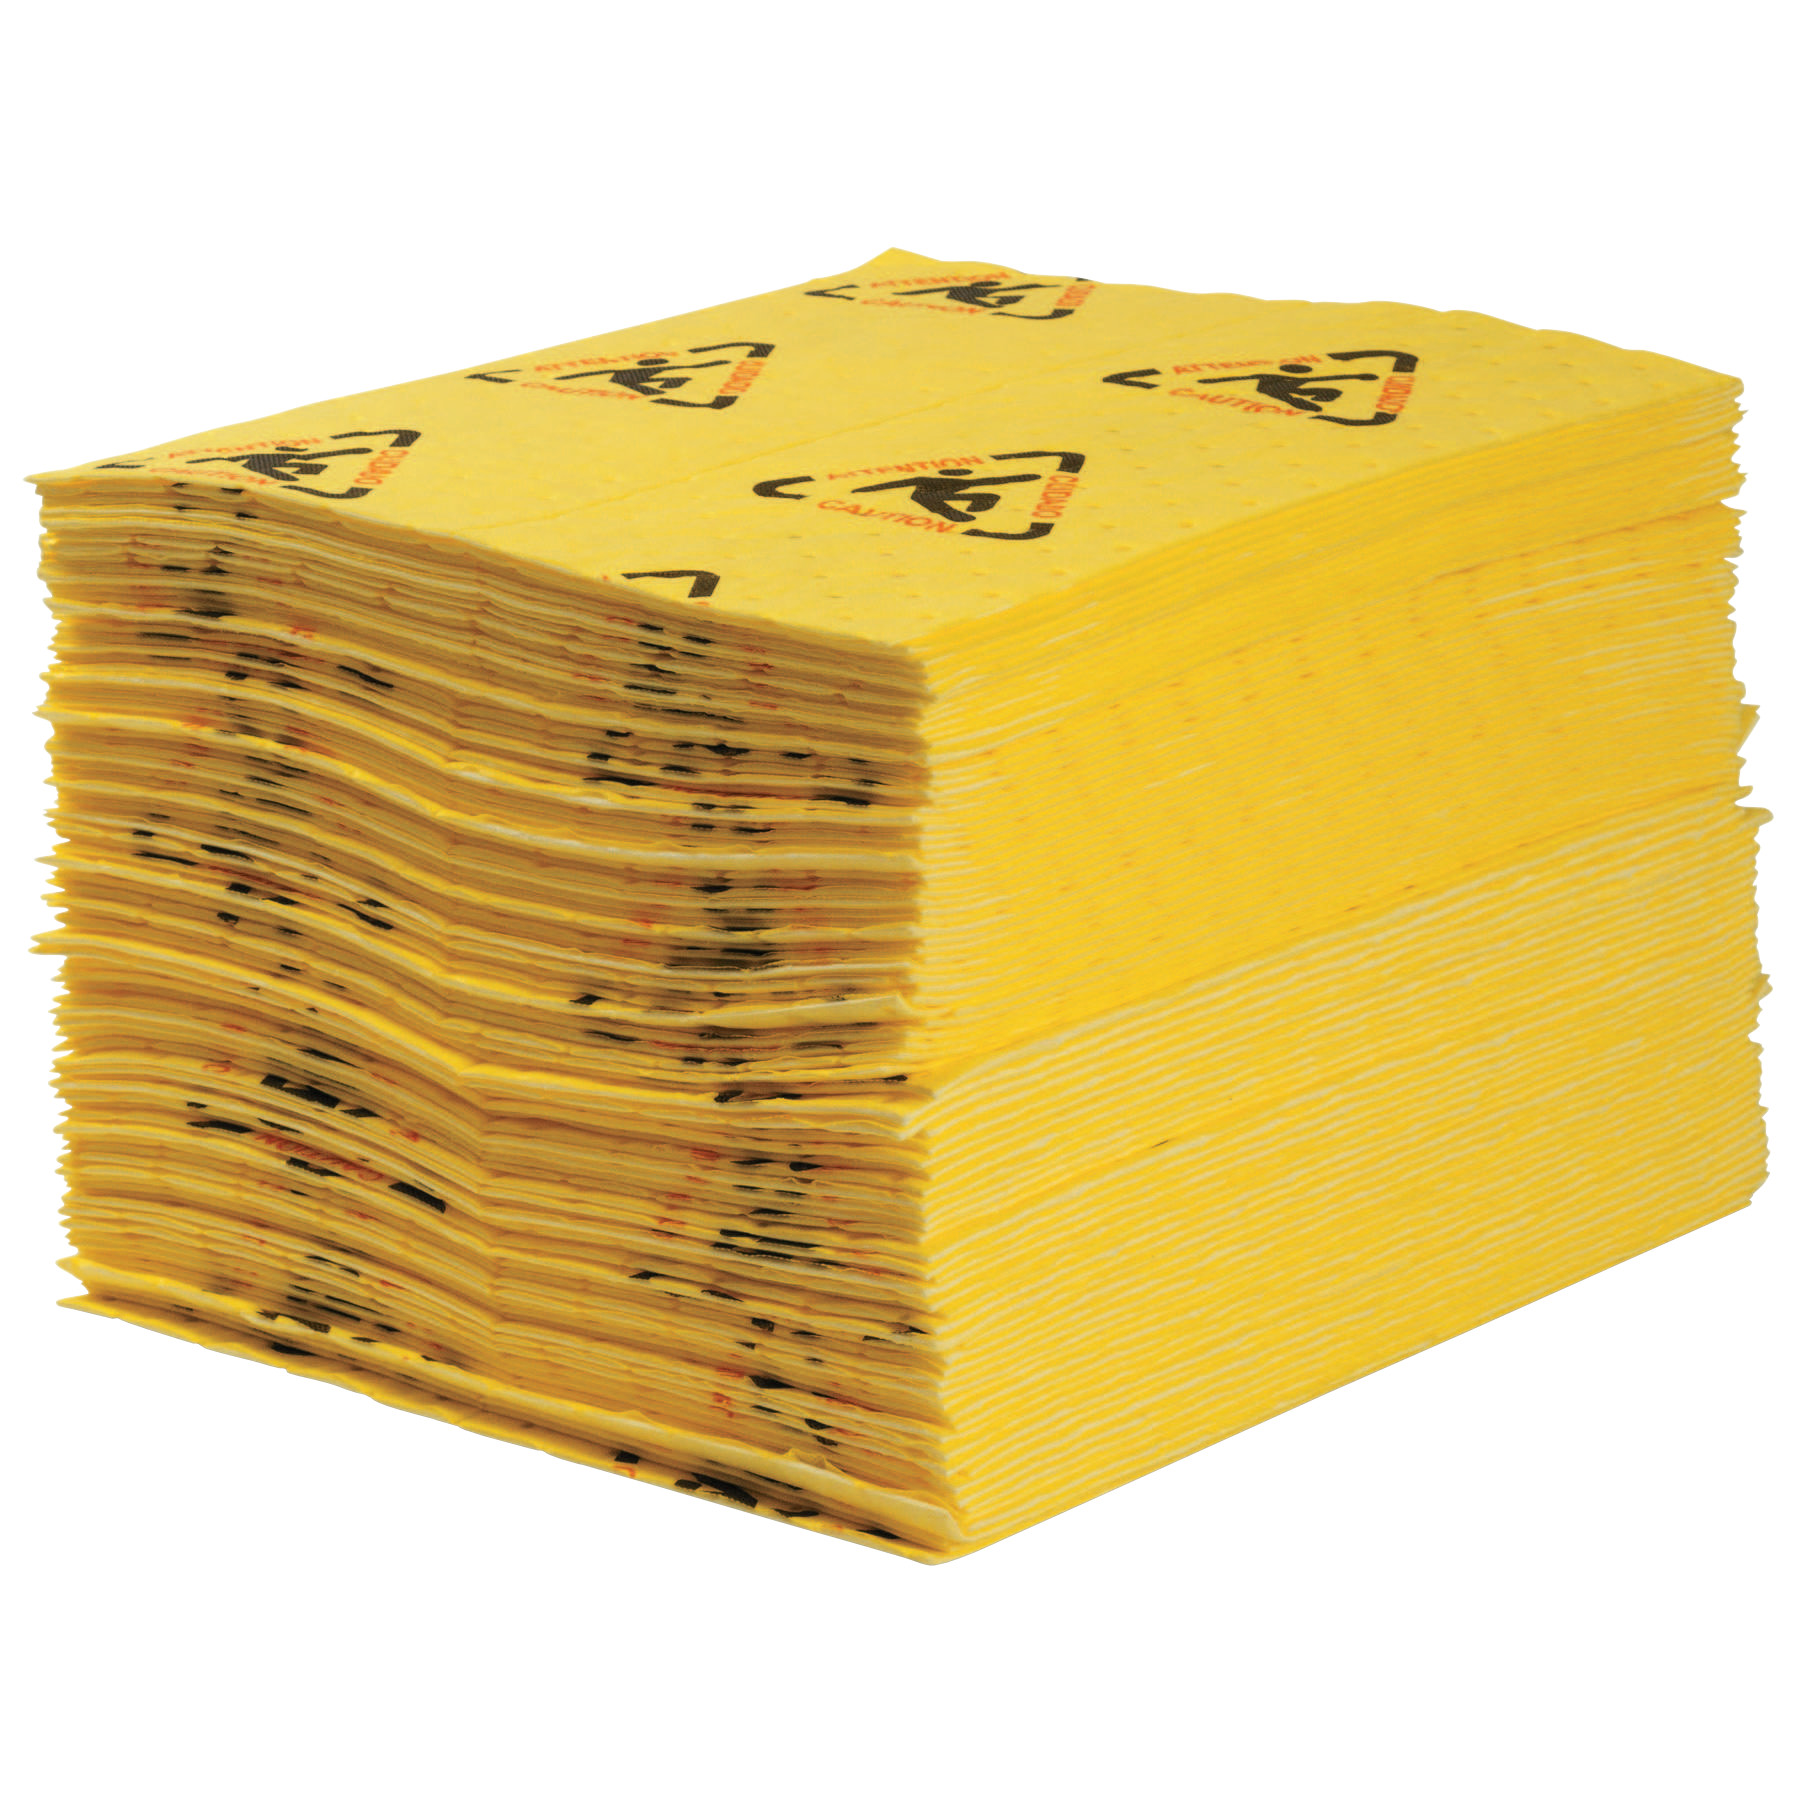 SPC SPC High Visibility Safety & Chemical Absorbent Mat, Abs 3 gal, 15 in x 19 in